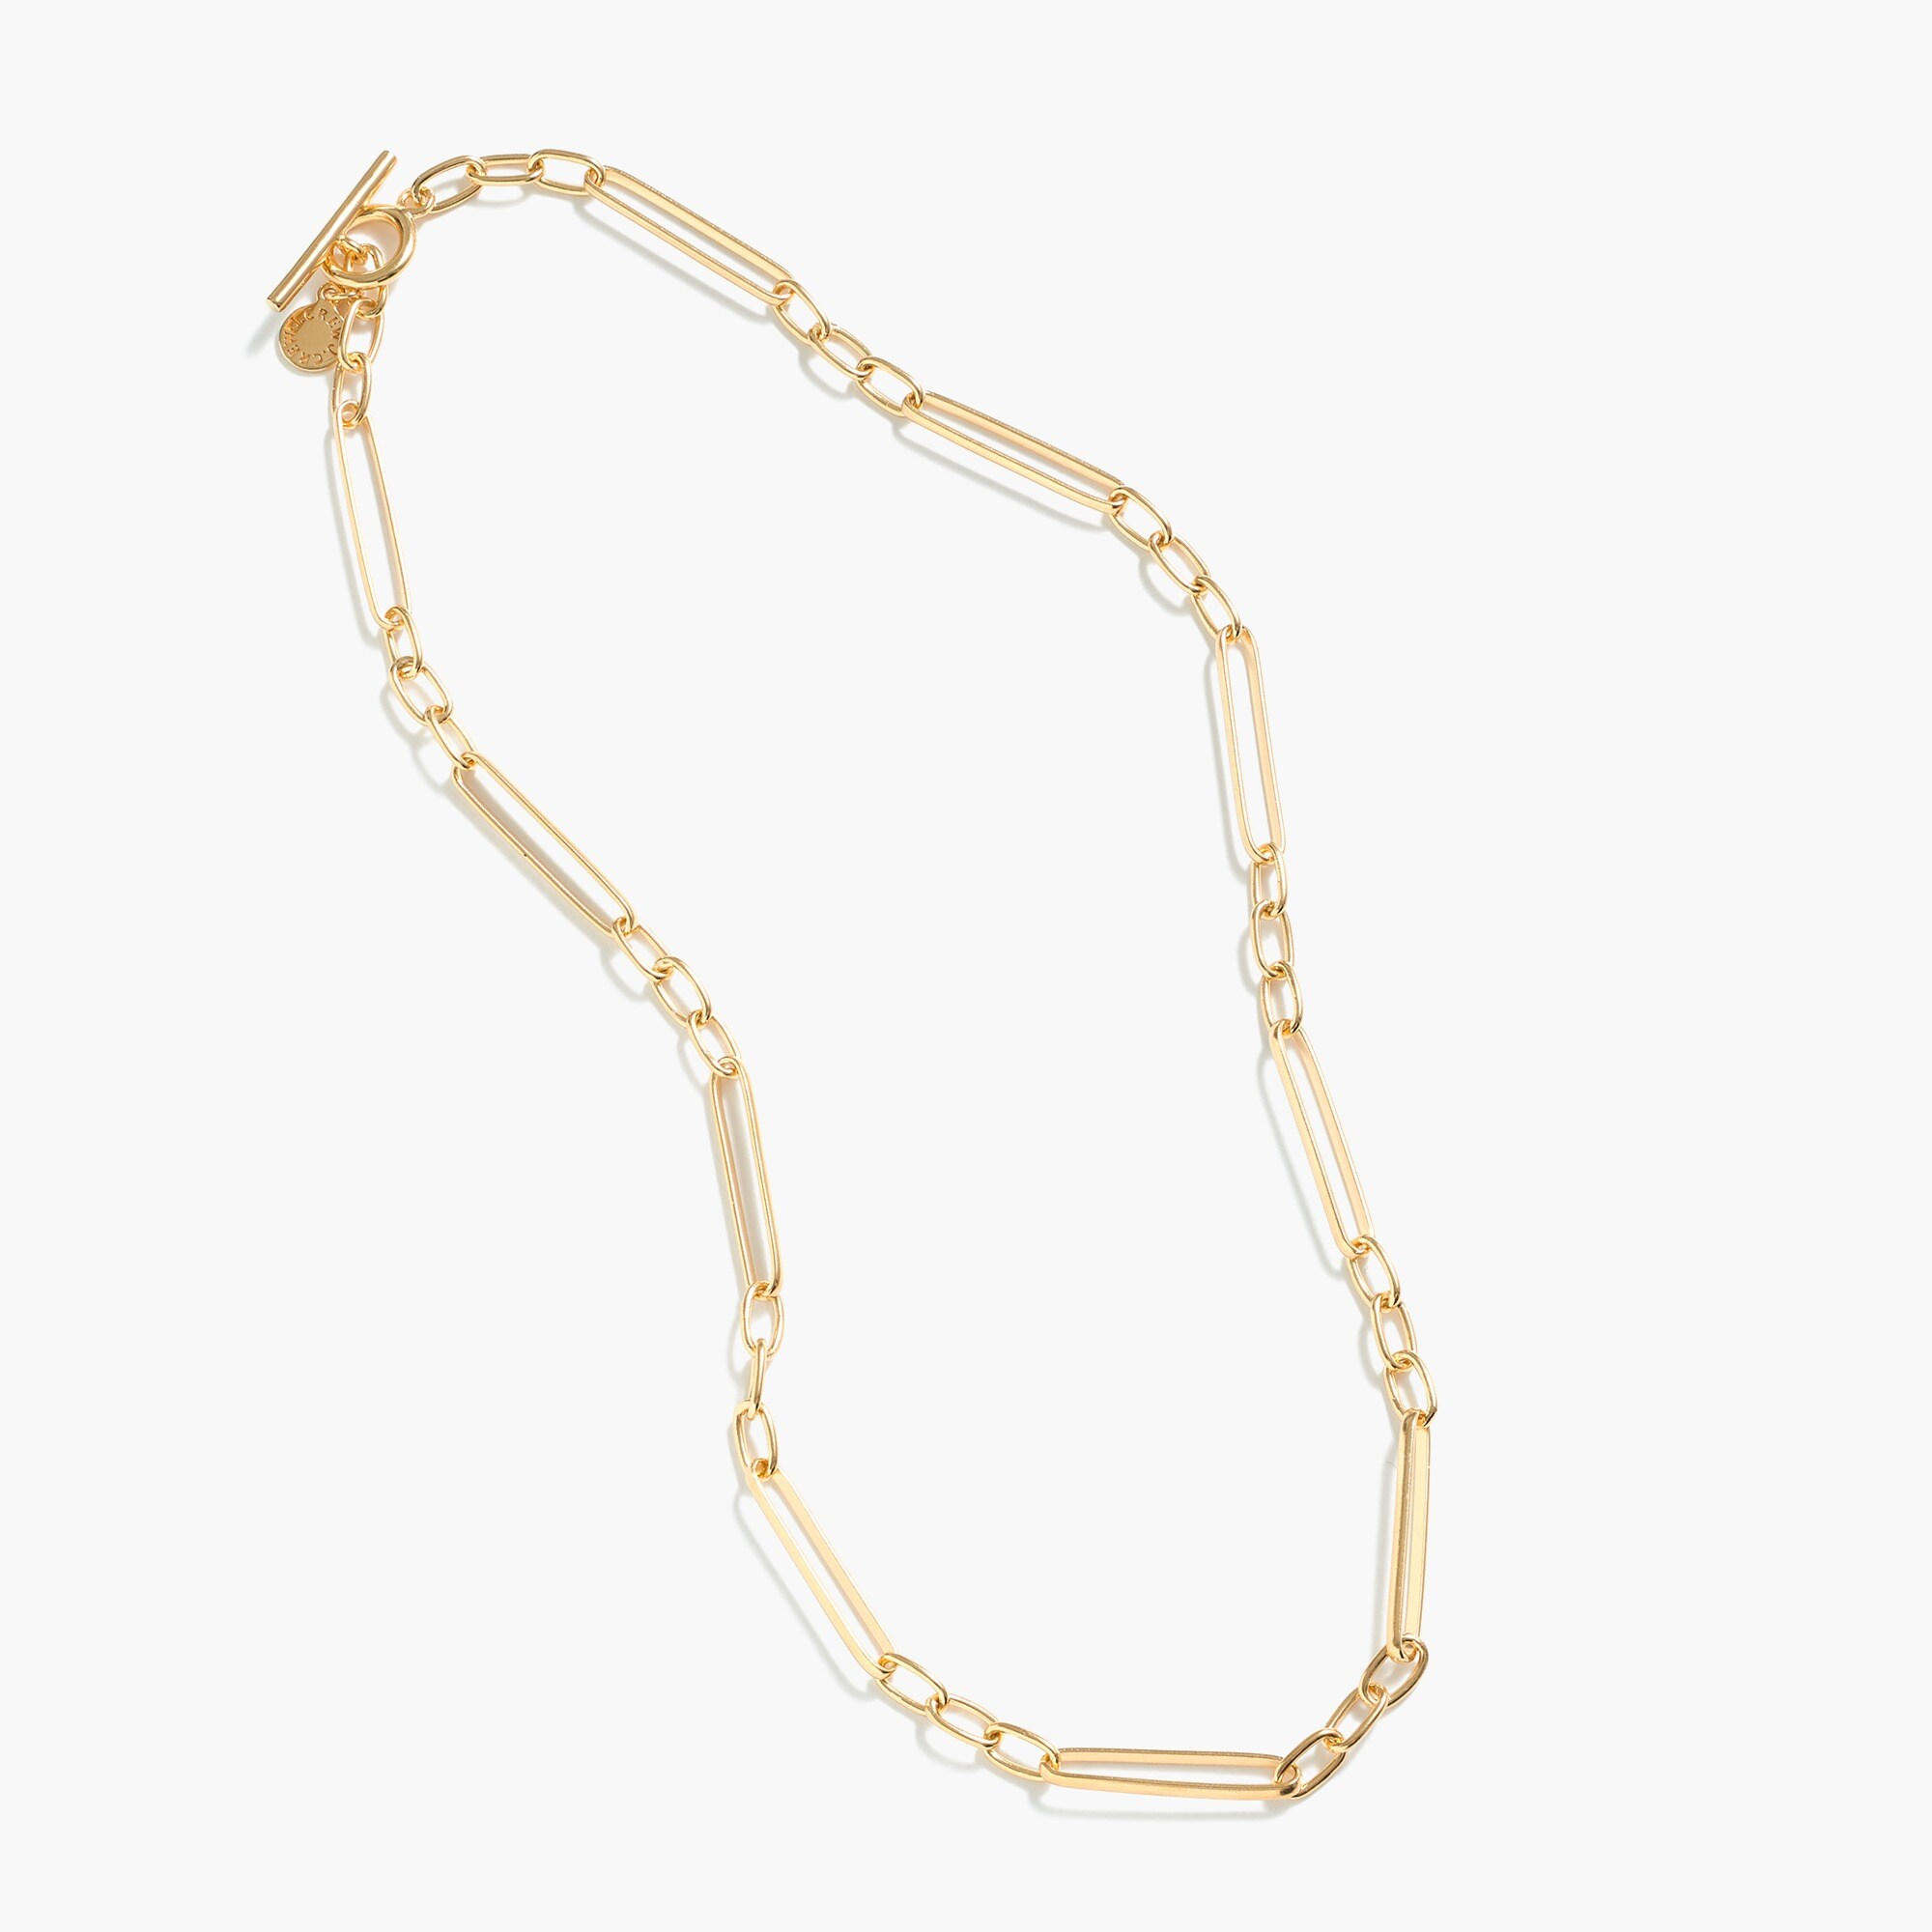 Image 2 for Demi-fine 14k gold-plated  short multi-link necklace